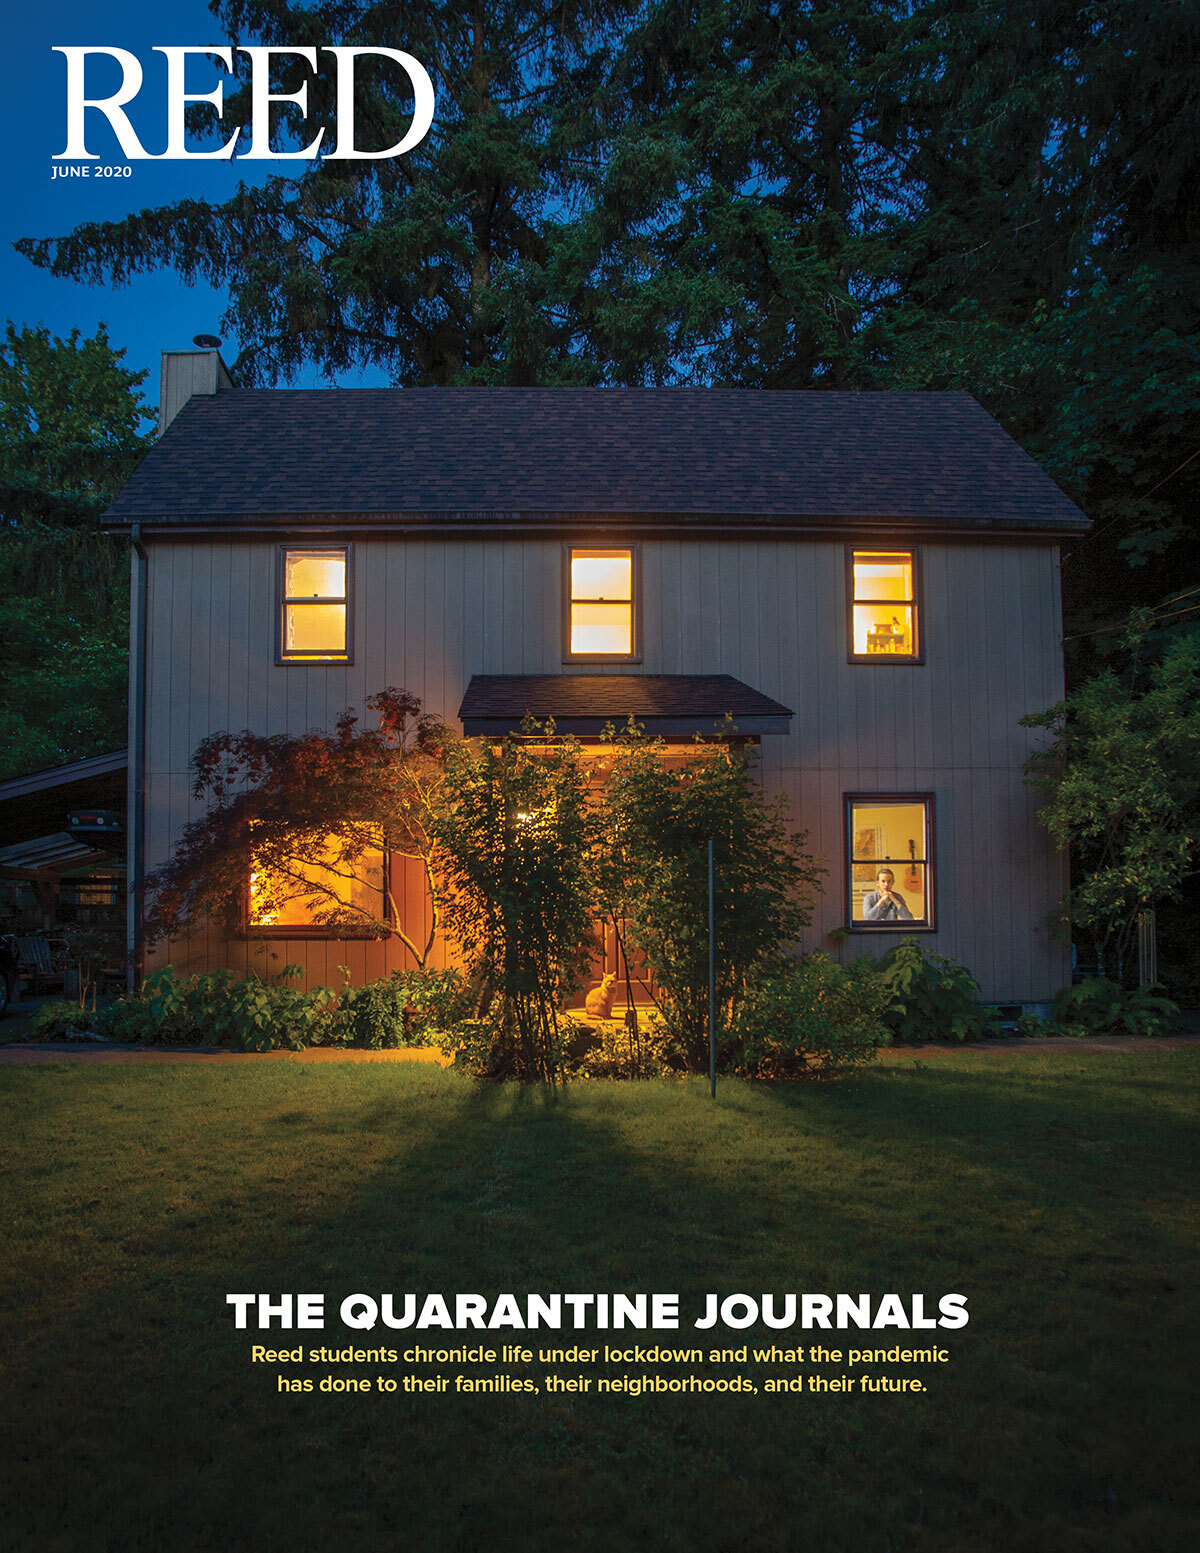 June 2020 Reed magazine cover showing a photograph of a house in the evening with the lights on and a peron seated looking out the window from inside